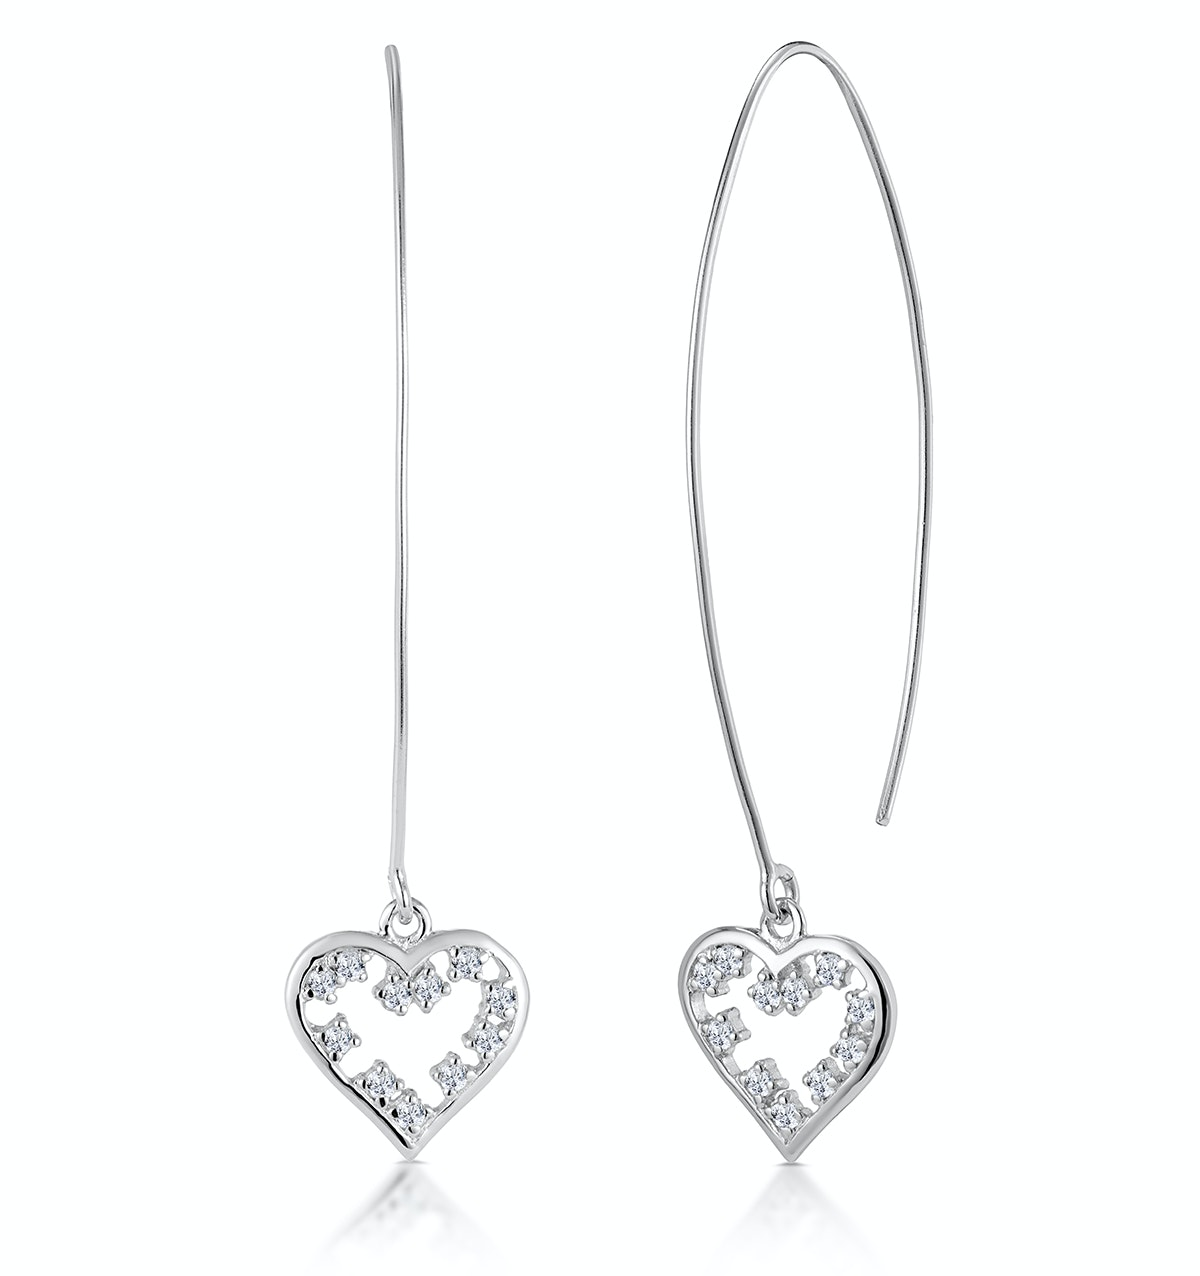 White Topaz Heart Threader Earrings in Silver - Tesoro Collection